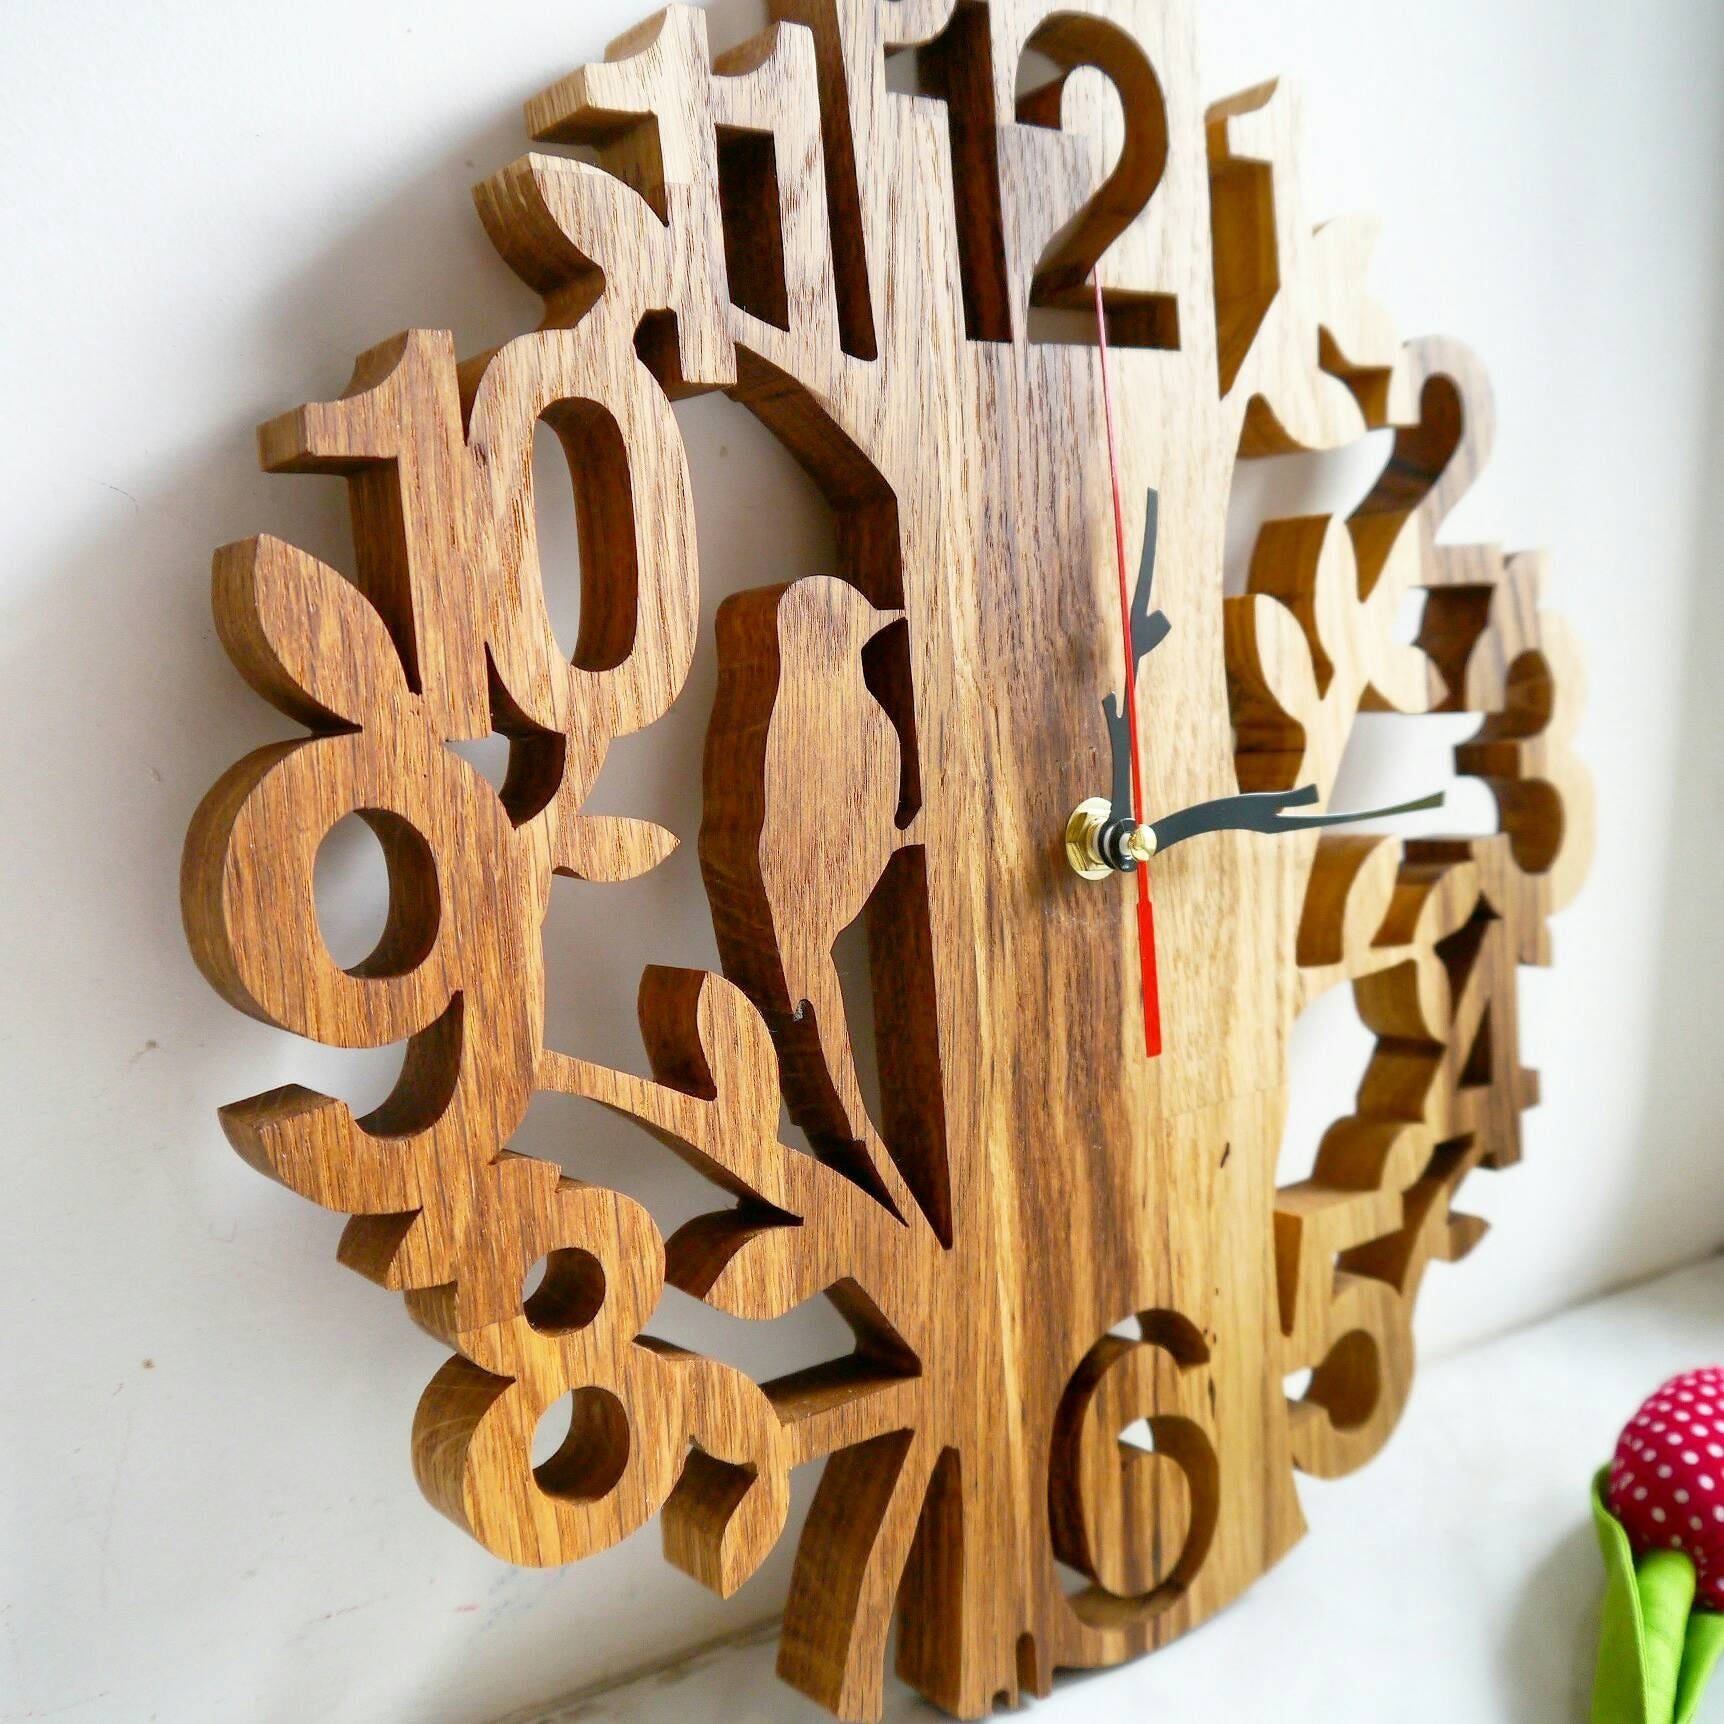 Wall Wooden Clock, Handmade Clock, Gift for him, her